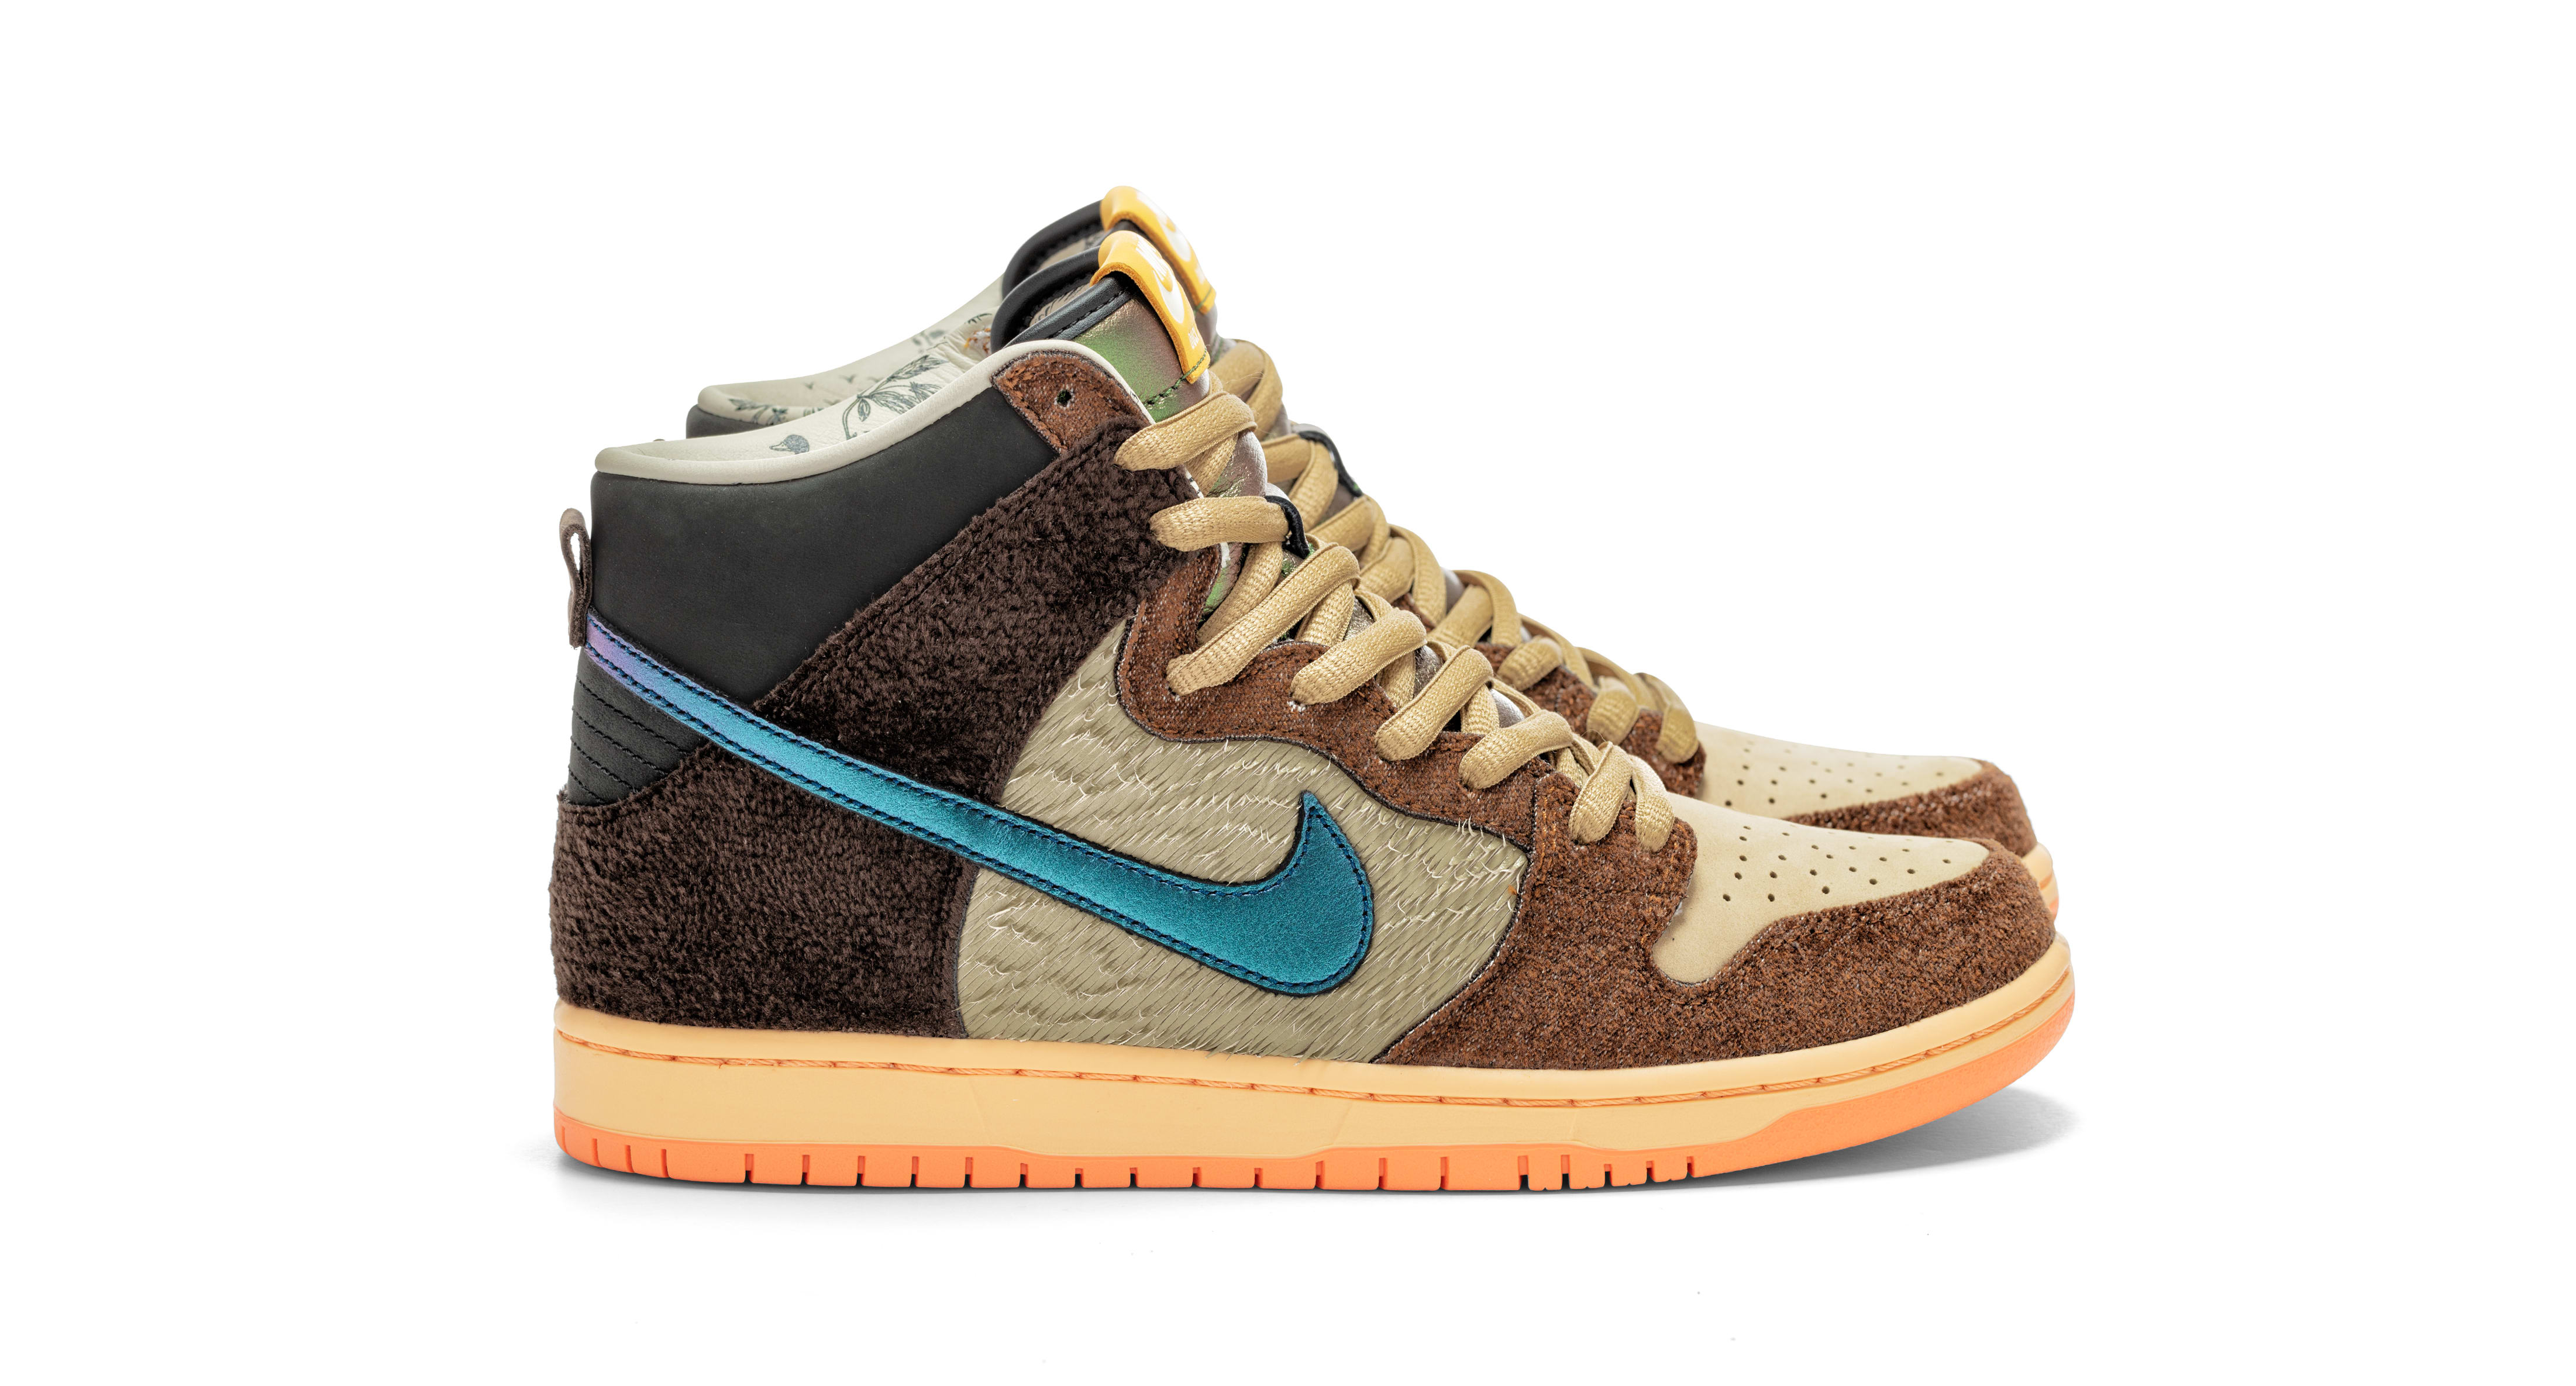 Concepts x Nike SB Dunk High 'TurDunken' DC6887-200 Lateral